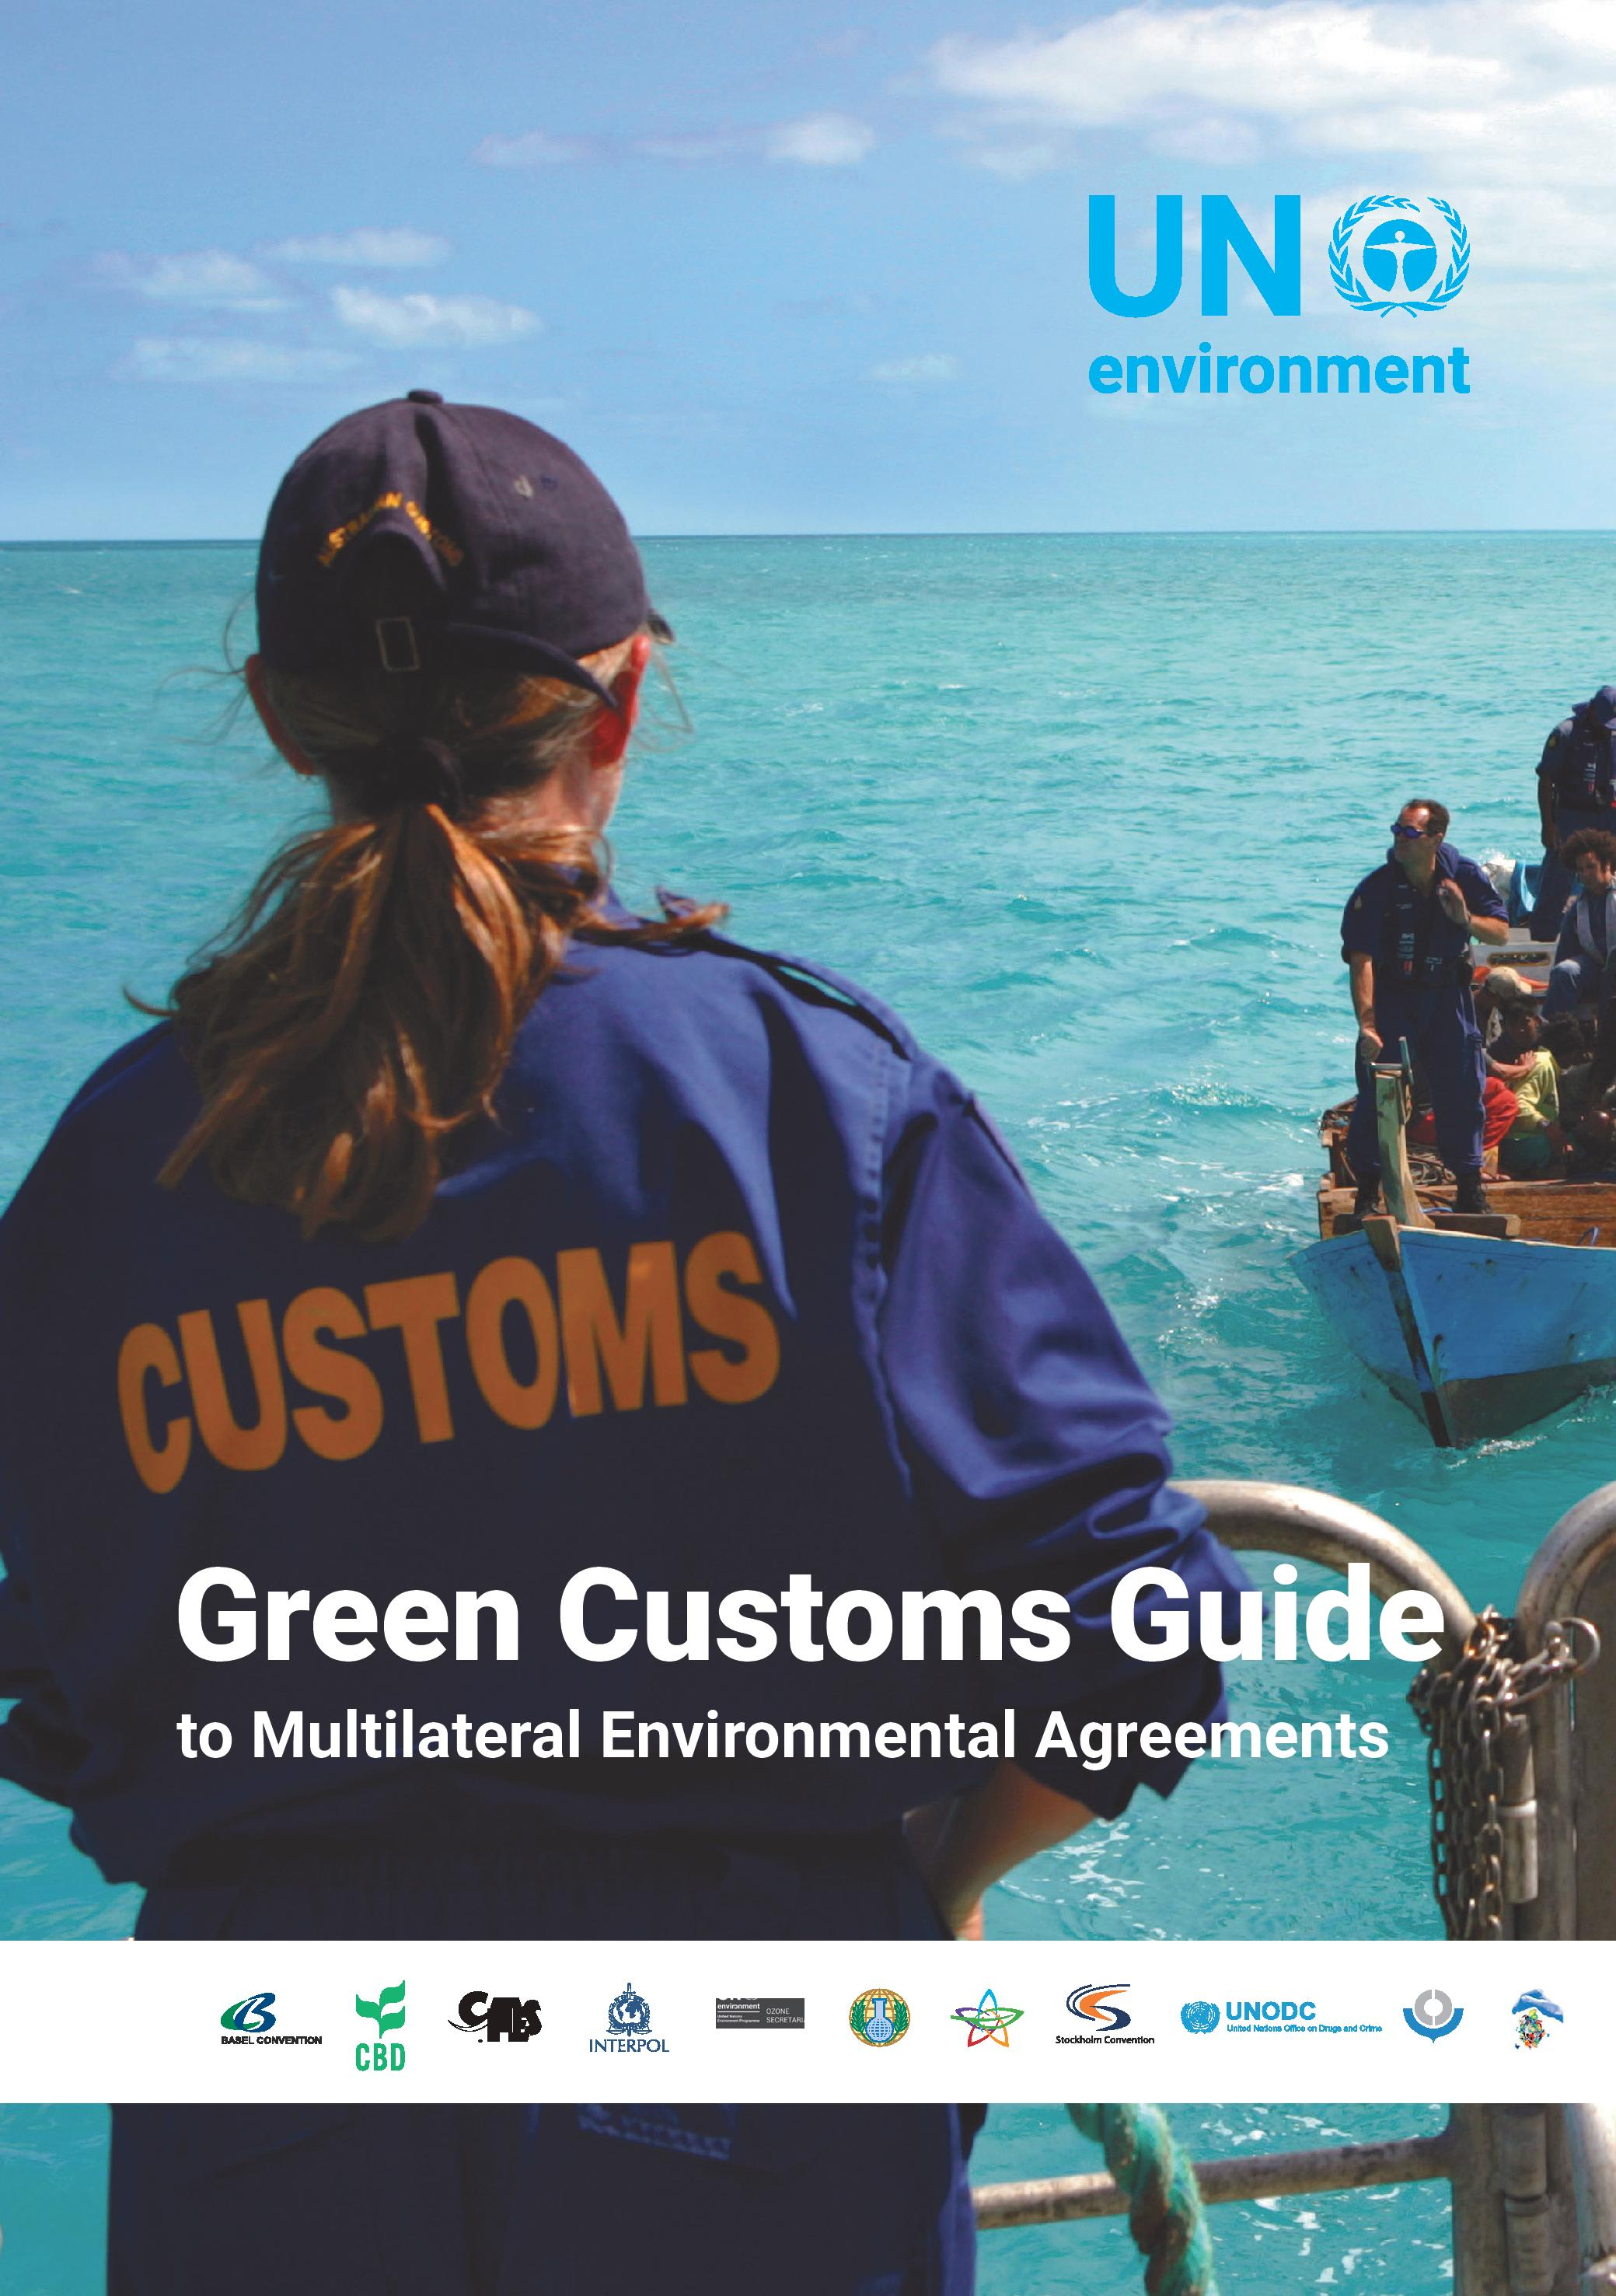 GREEN CUSTOMS GUIDE